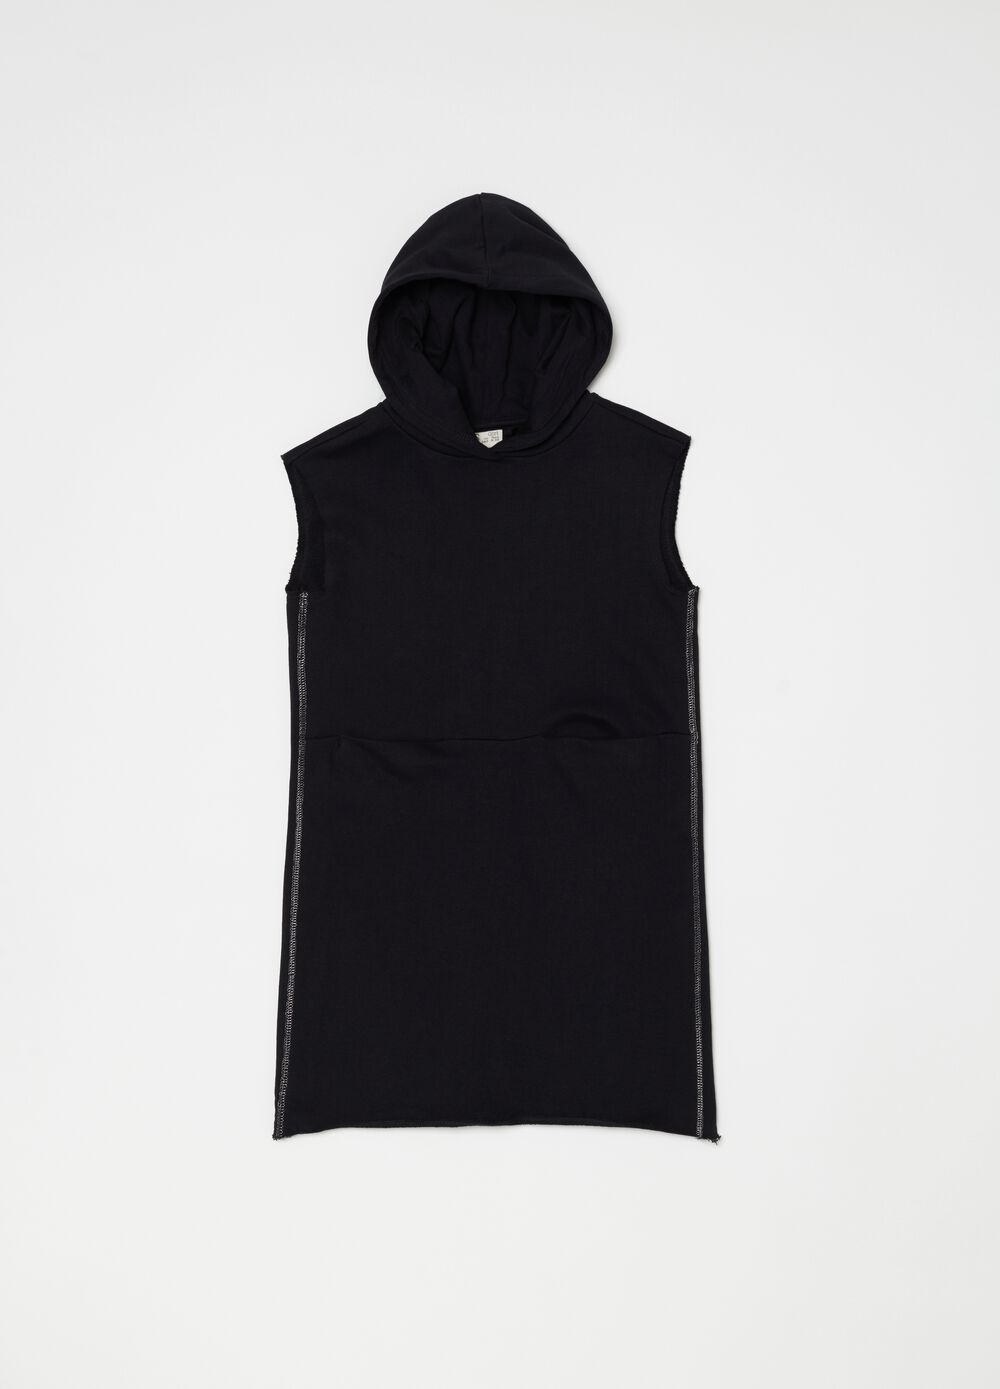 Sleeveless dress with hood